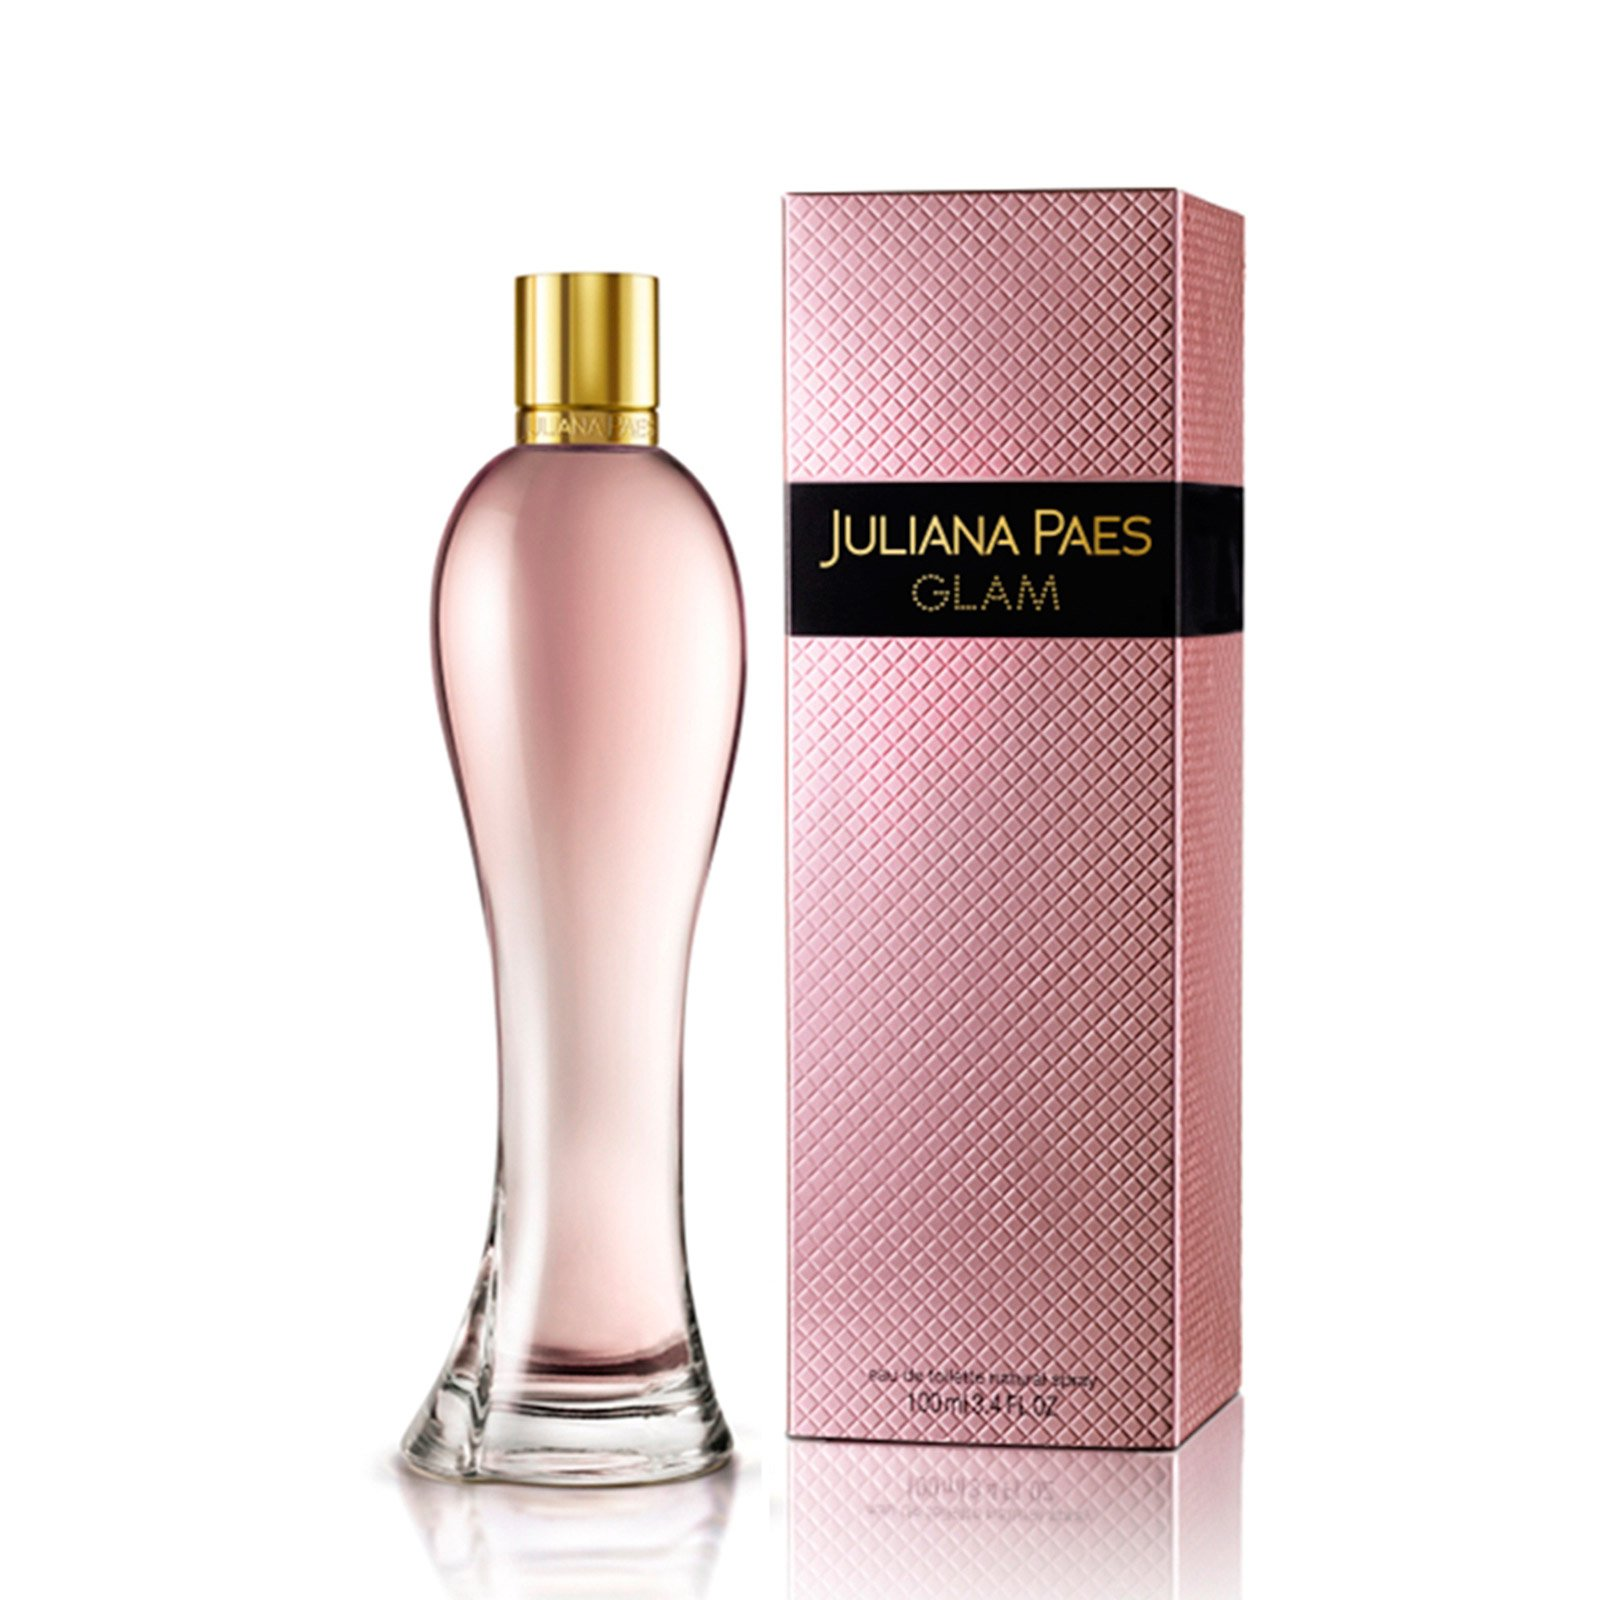 823202b7474 Perfume Juliana Paes Glam Feminino Eau de Toilette - The Beauty Box